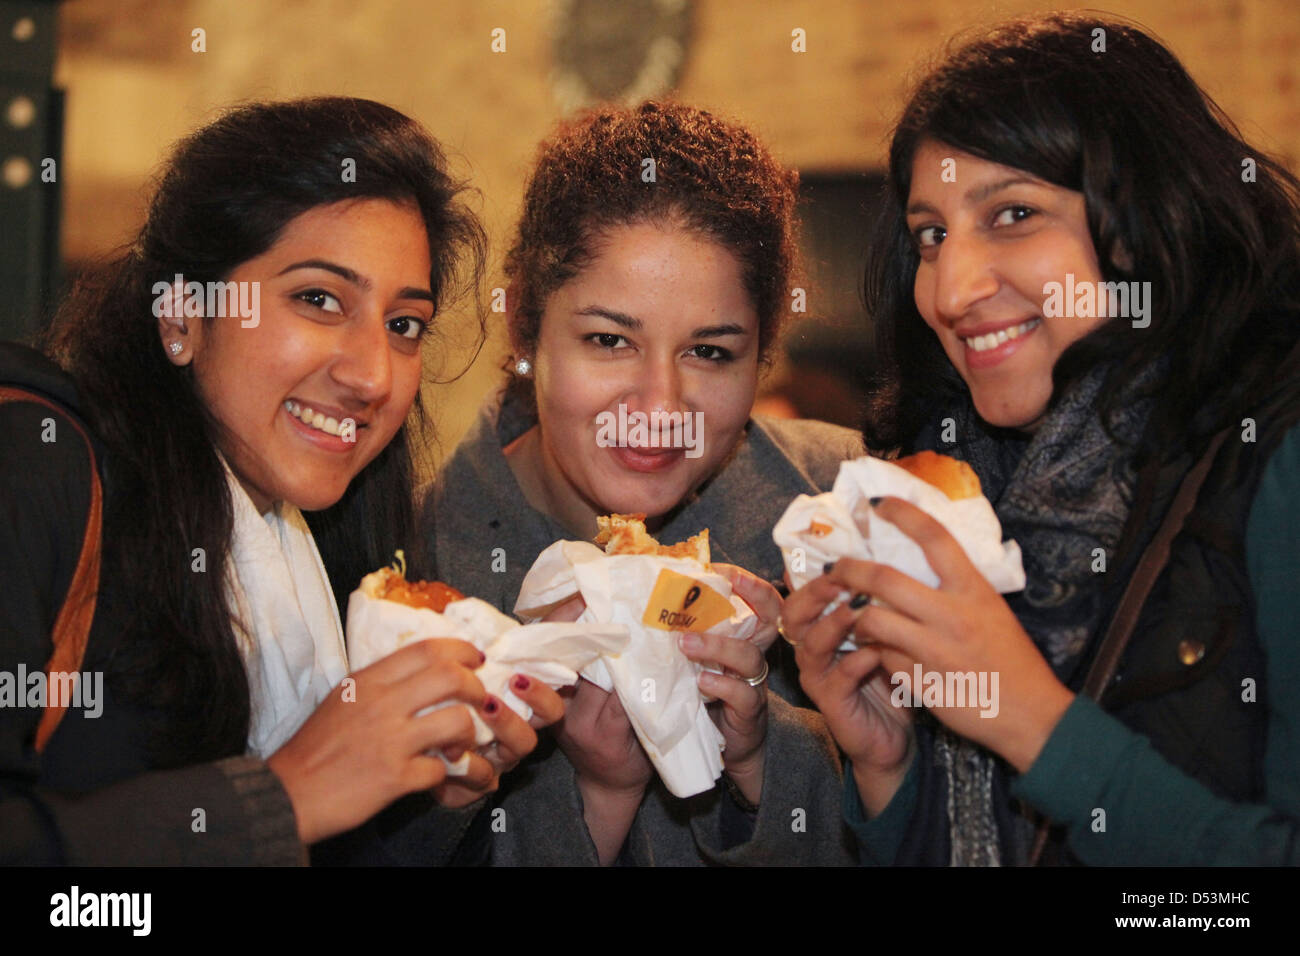 people eating food at Feast food festival at Tobacco Dock, London UK, February 2013 - Stock Image